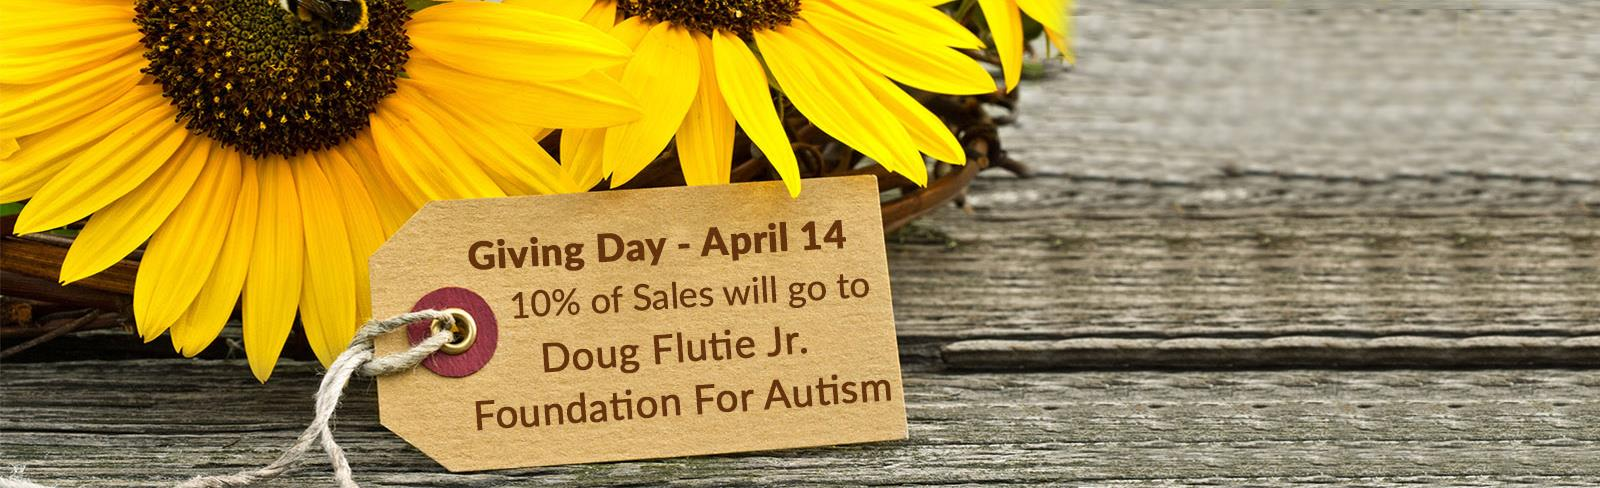 Giving Day - March 10 10% of Sales will go to Womens Center of Danbury